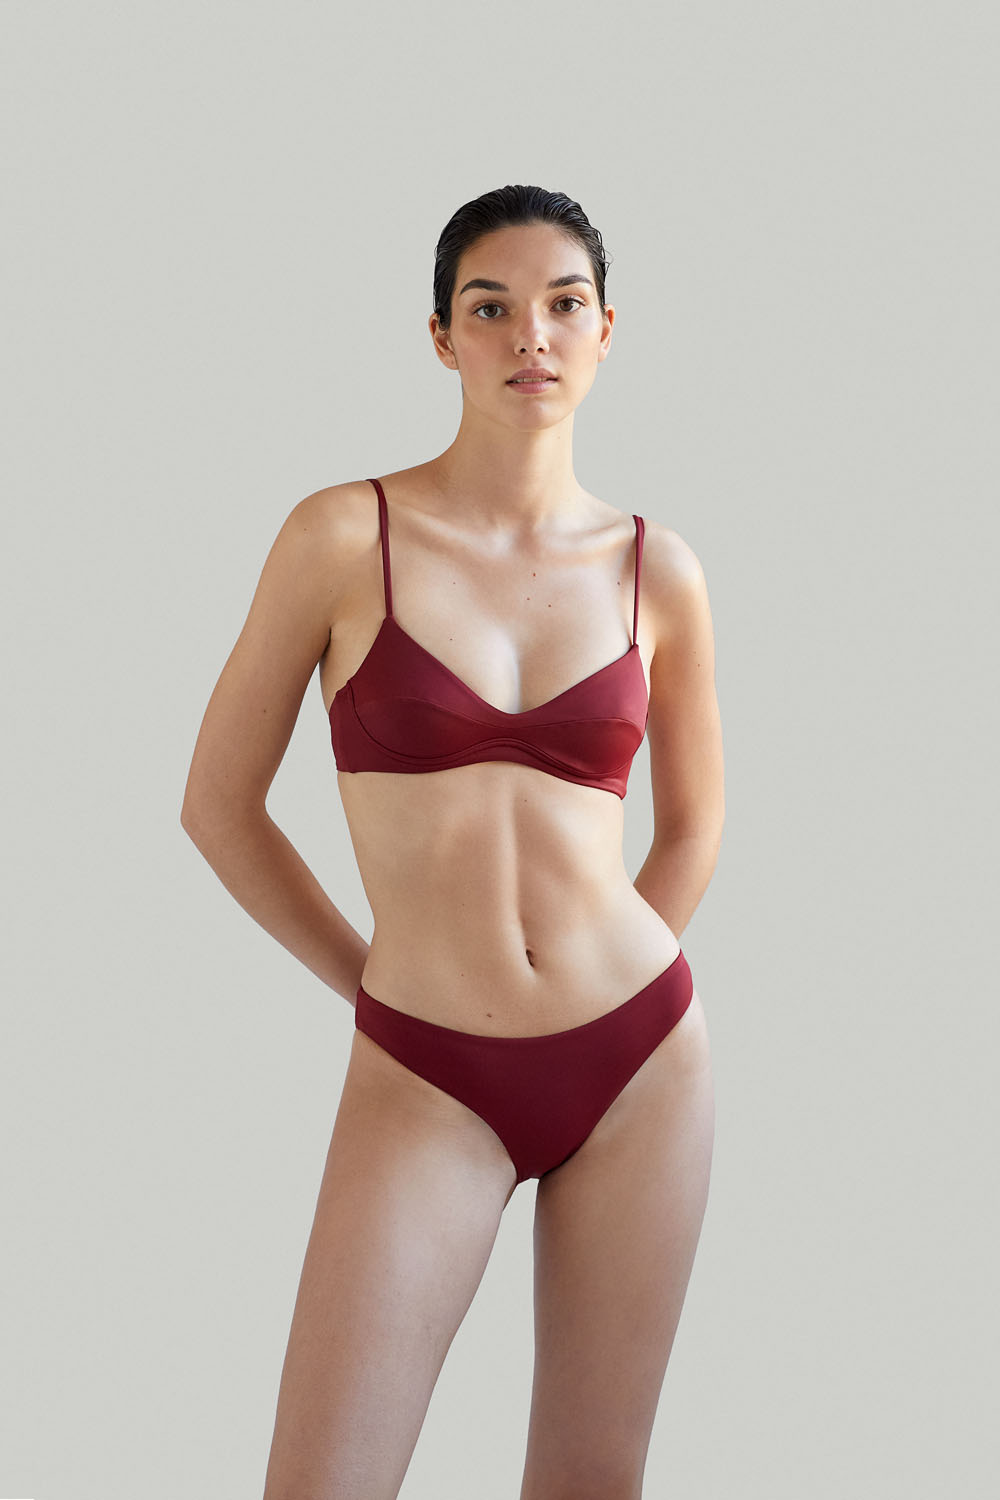 eco, swimwear, bikini, swimsuit, recycled, sustainable, conscious, fashion, bañador, sostenible, reciclado, made in spain